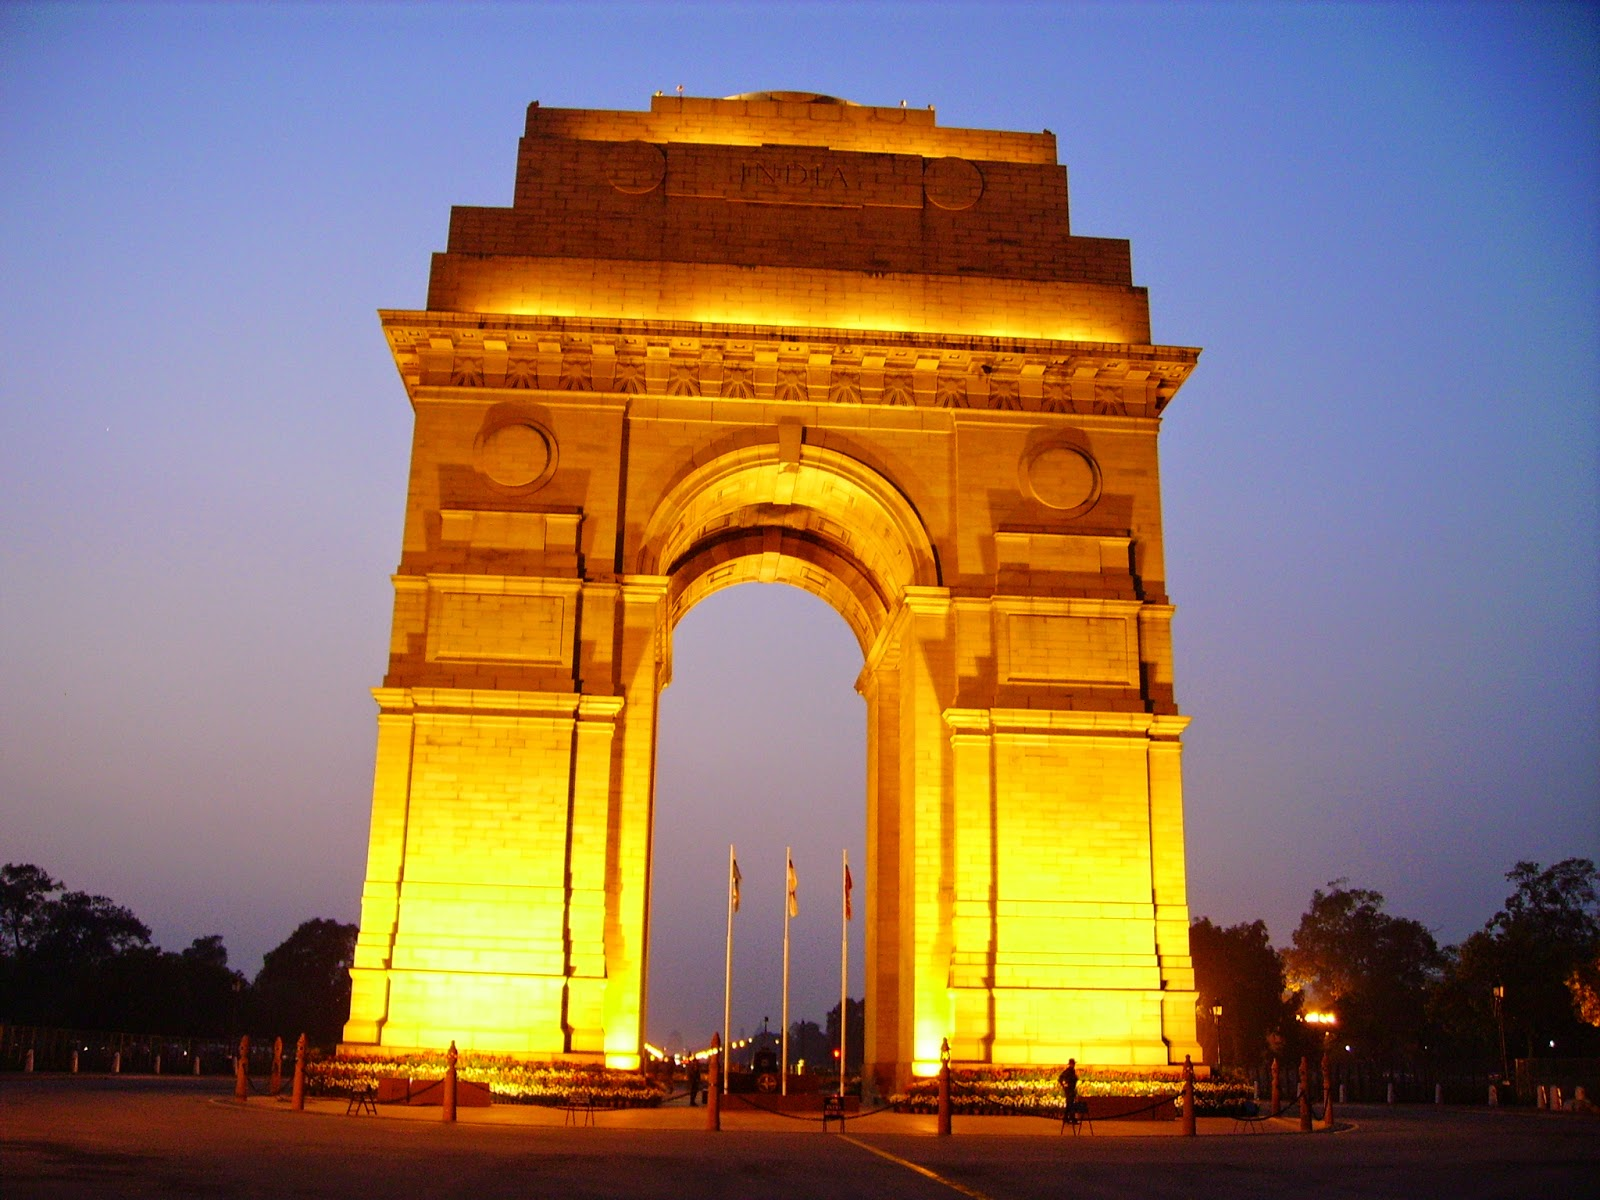 Night View of The India Gate, Delhi India